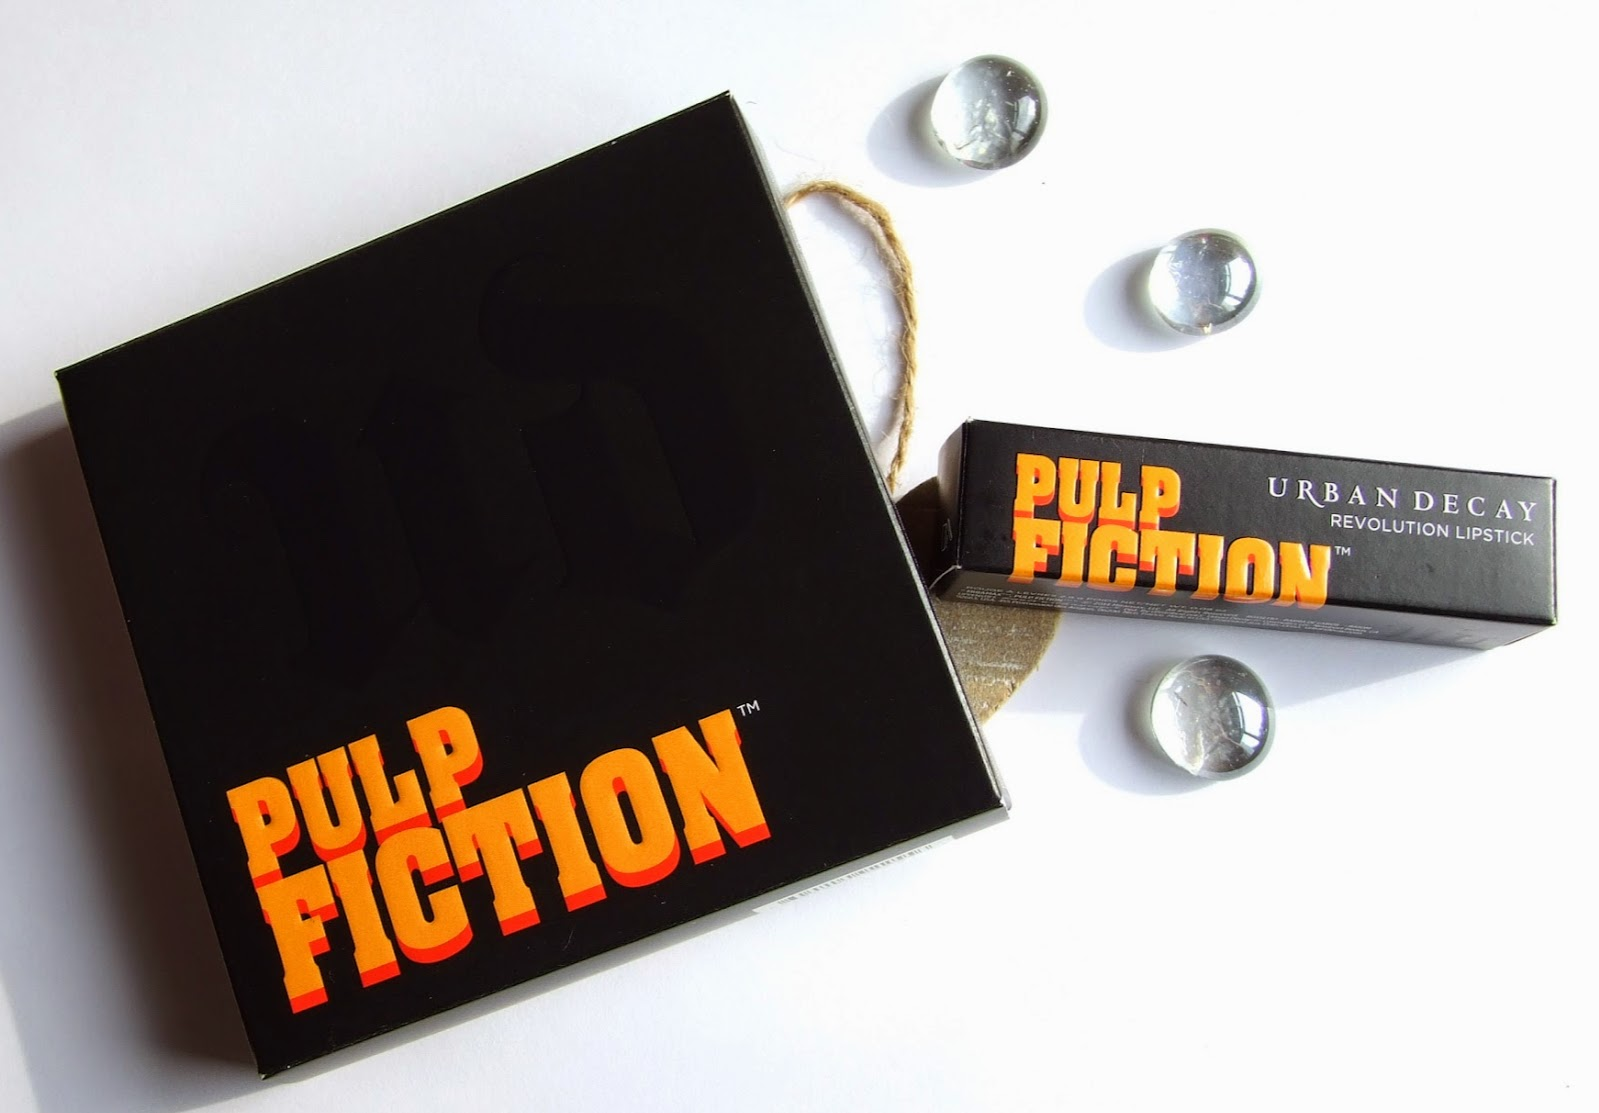 Urban decay pulp fiction collection swatches review mrs mia wallace lipstick palette eyeshadow